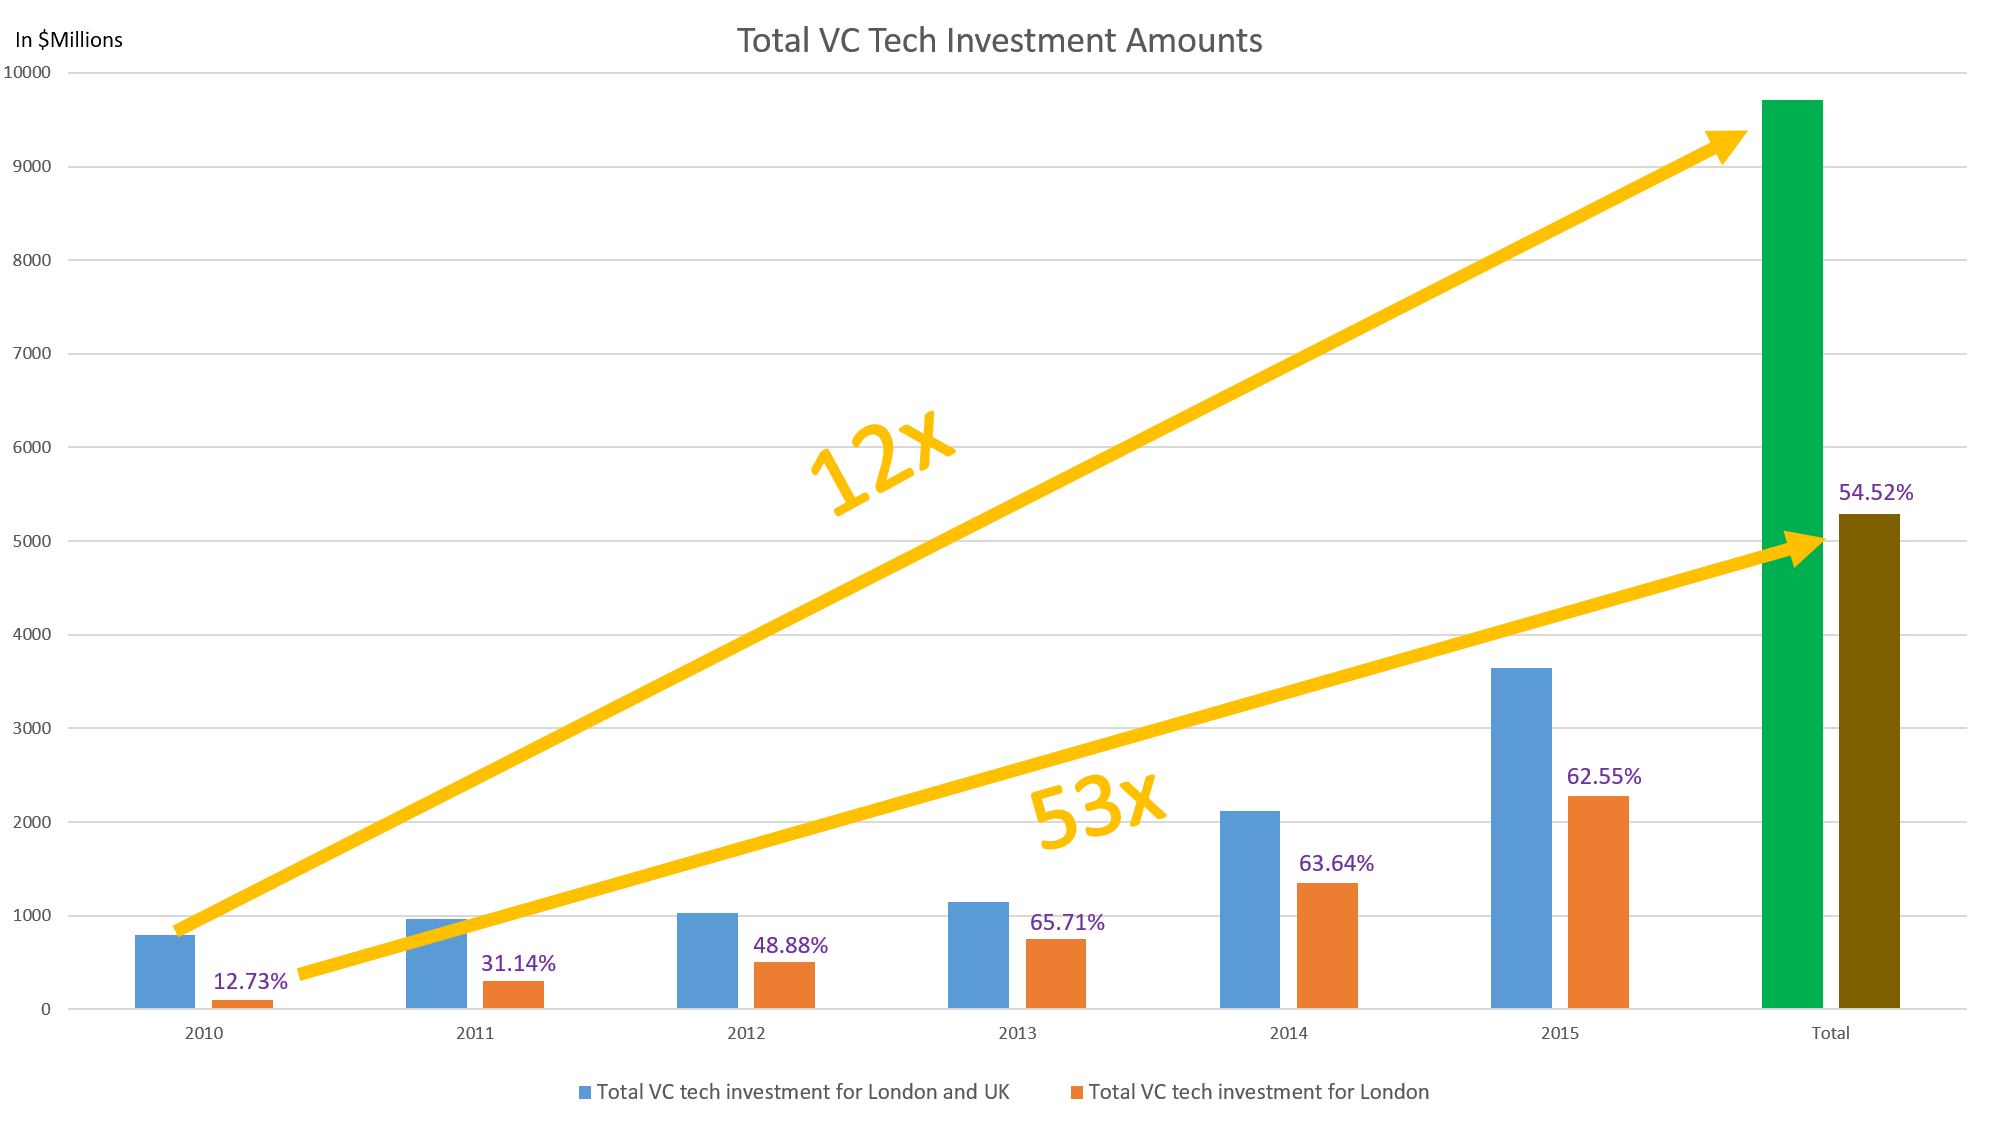 Total VC Tech Investment Amounts UK/London 2010-2015